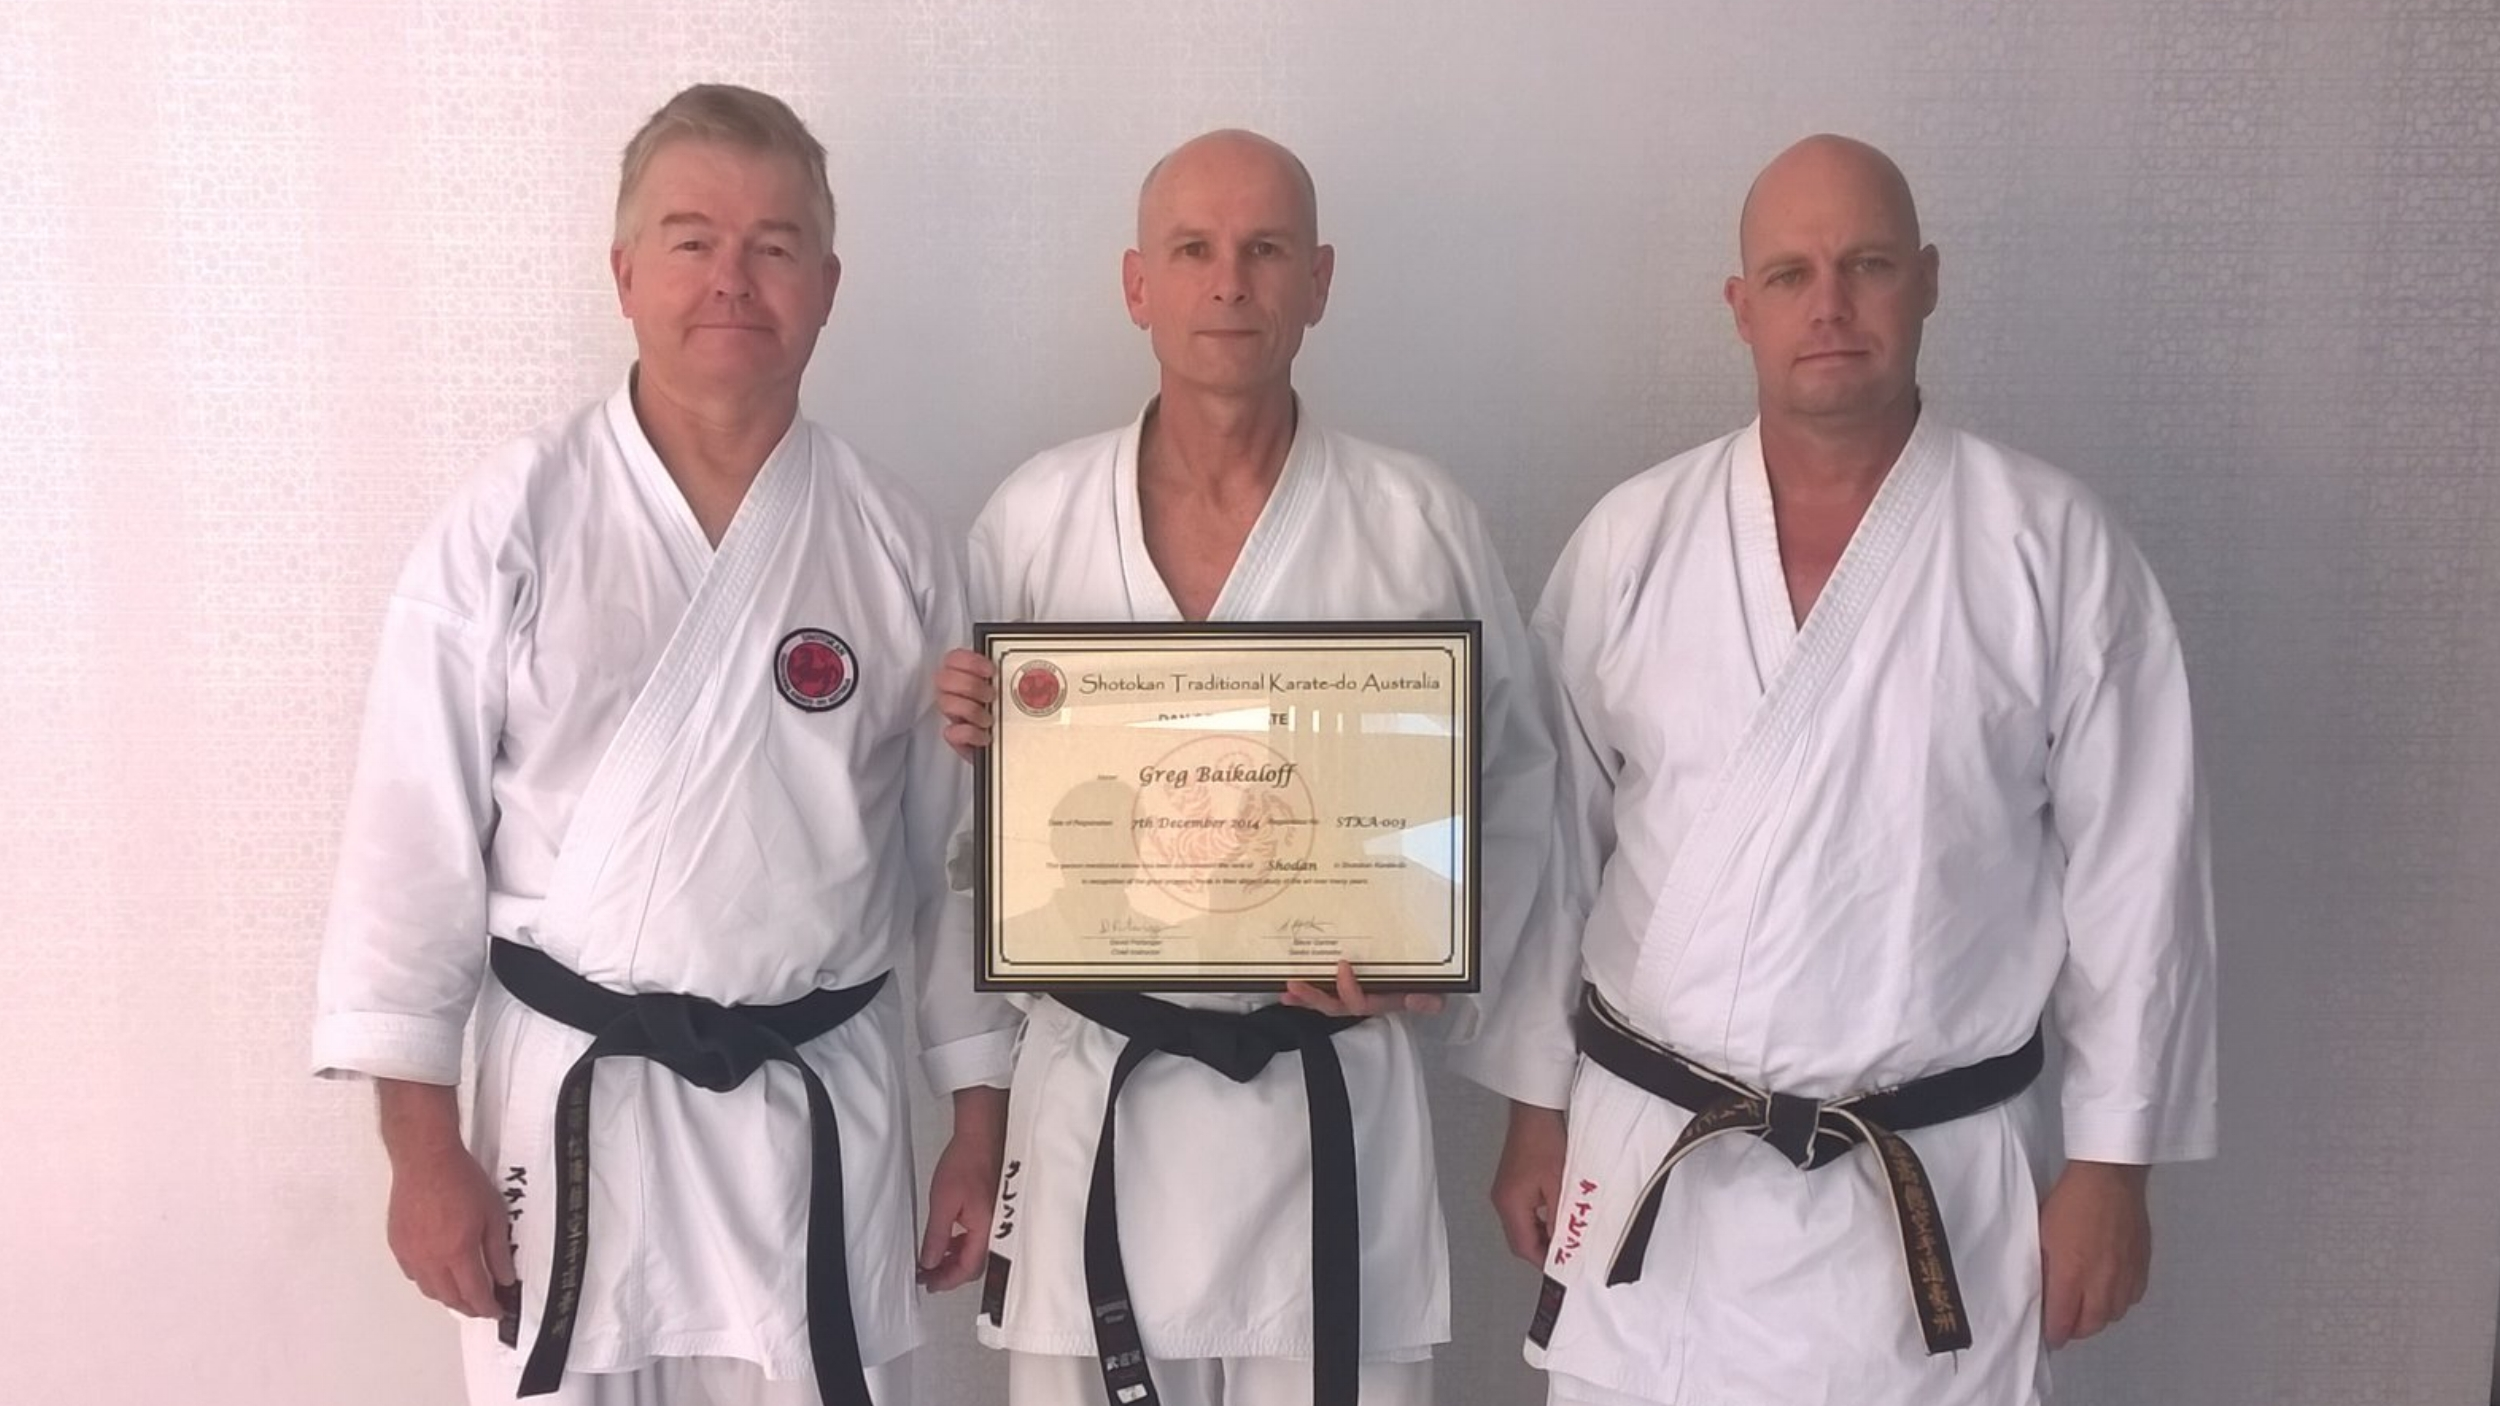 Qualified Instructors - Our instructors at STKA have earned a reputation for teaching to a very high standard of shotokan karate.